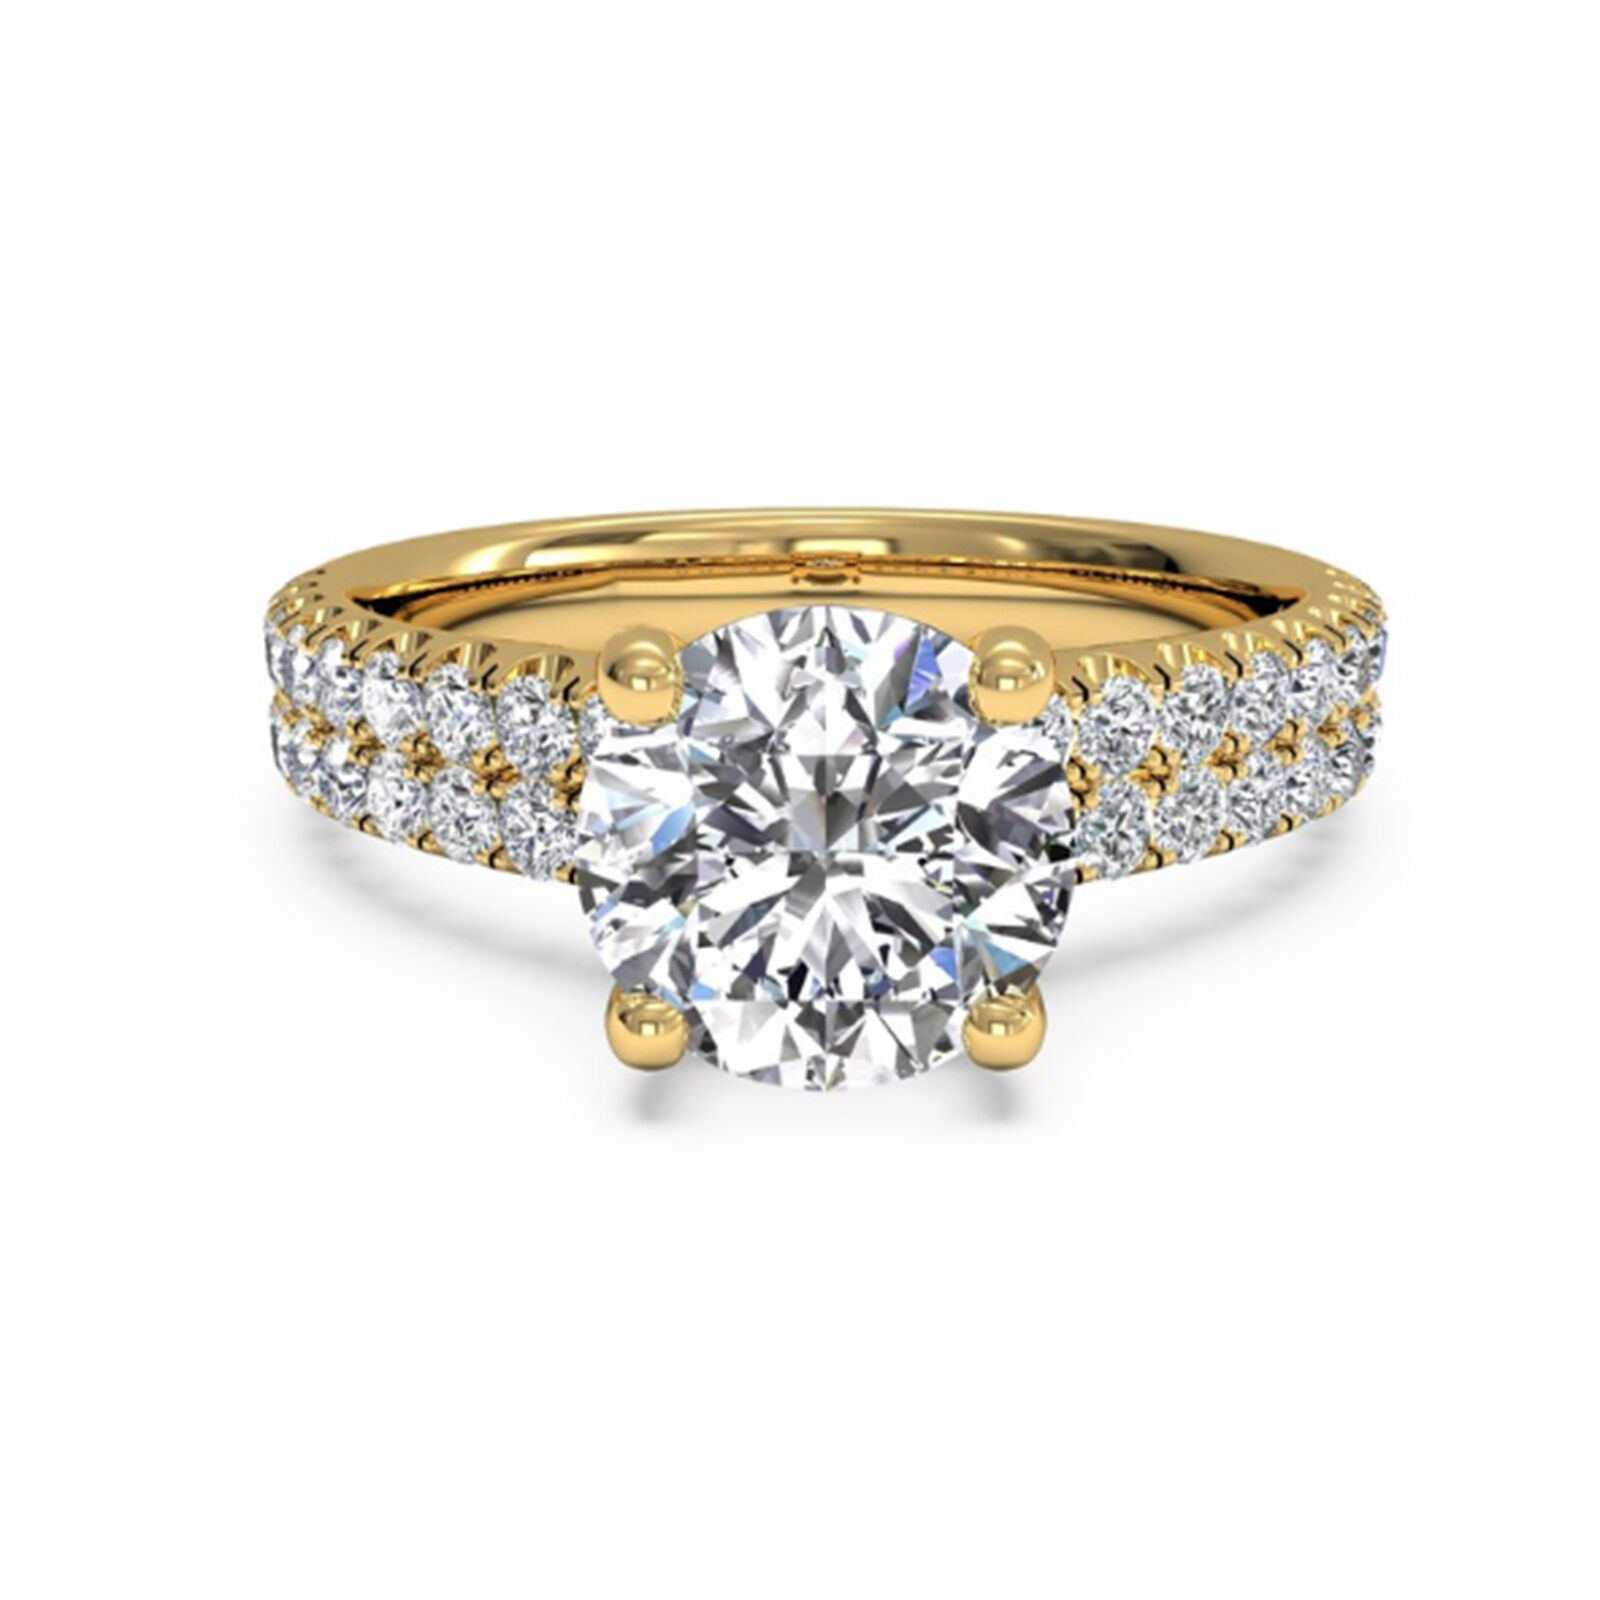 1.60 Ct Diamond Engagement Rings 14K Yellow gold Round Cut VVS1 D Size 6 7 8